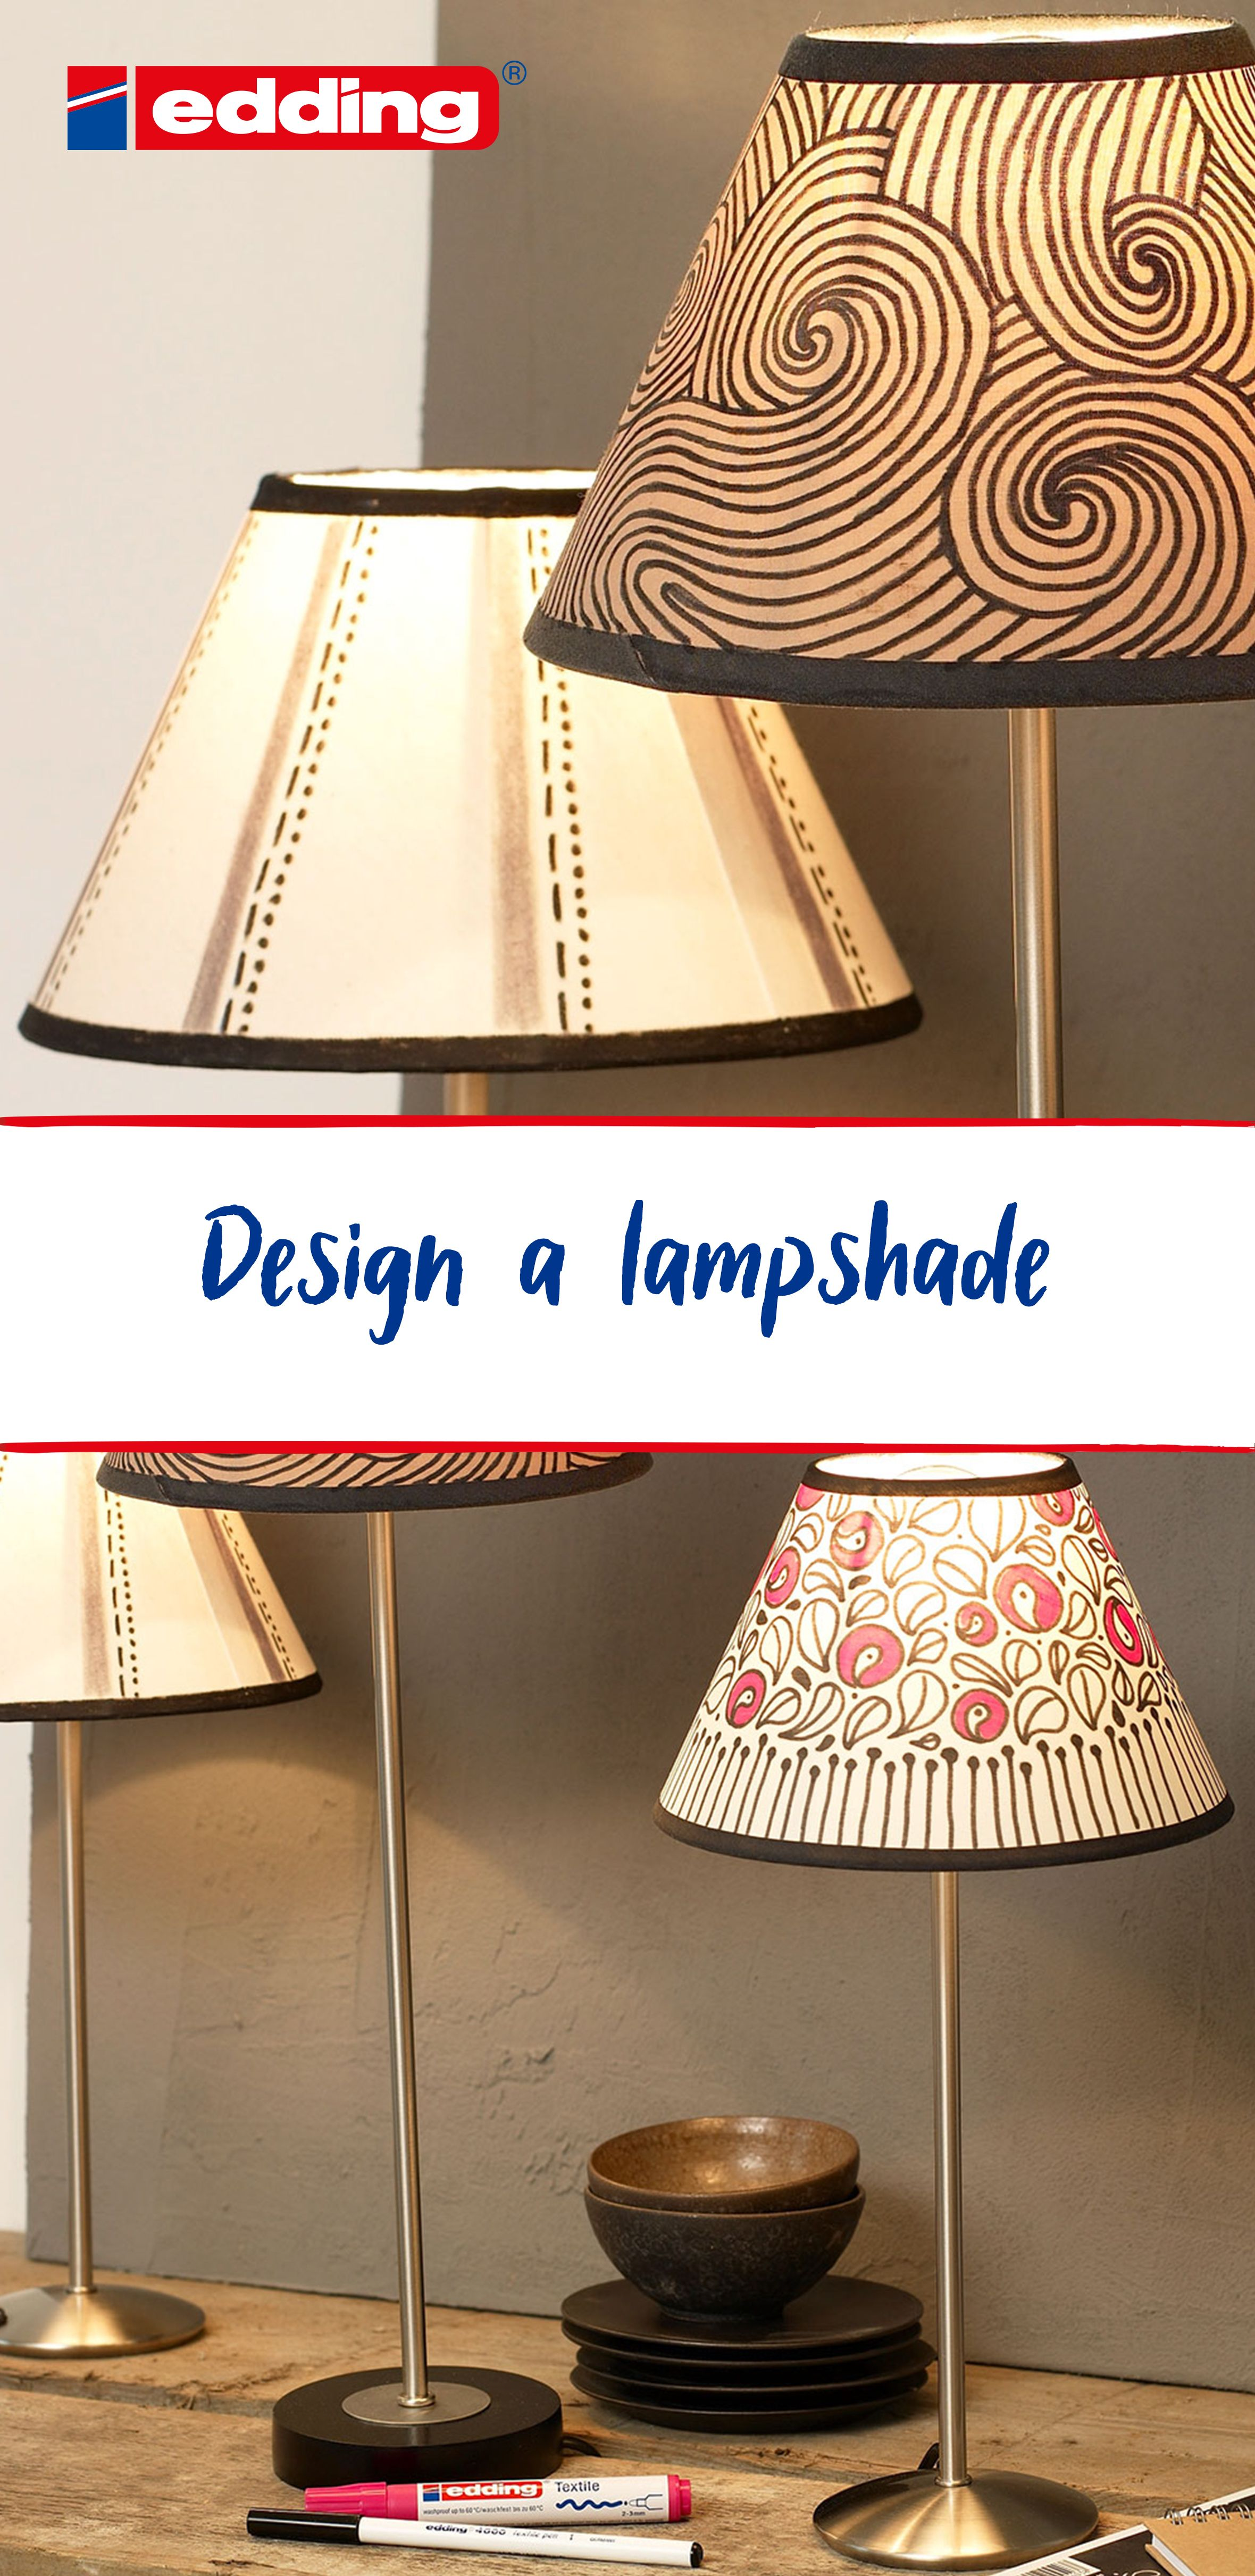 Would you like to jazz up your home by giving your lamp an